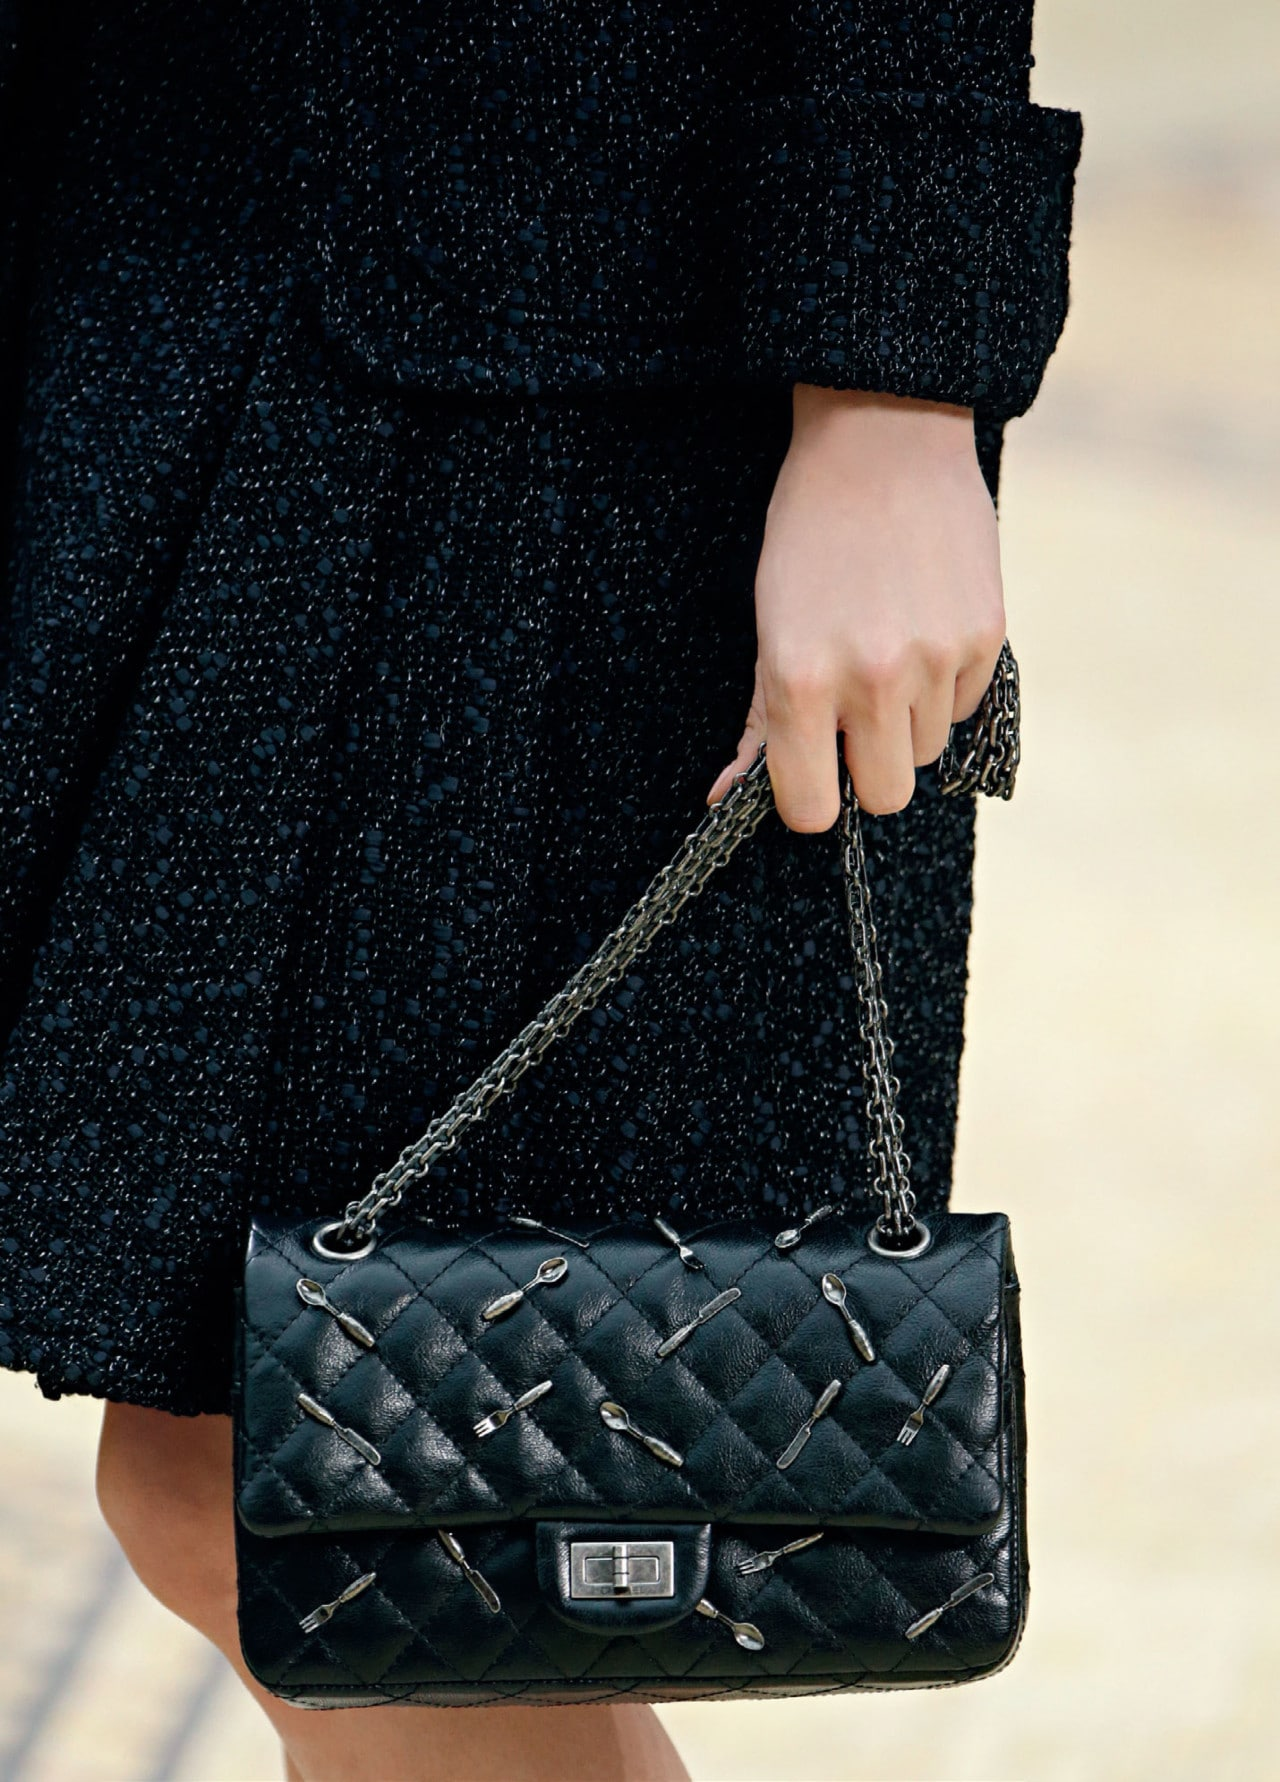 9bd84db5db A beginner's guide to Chanel bags - Vogue Australia